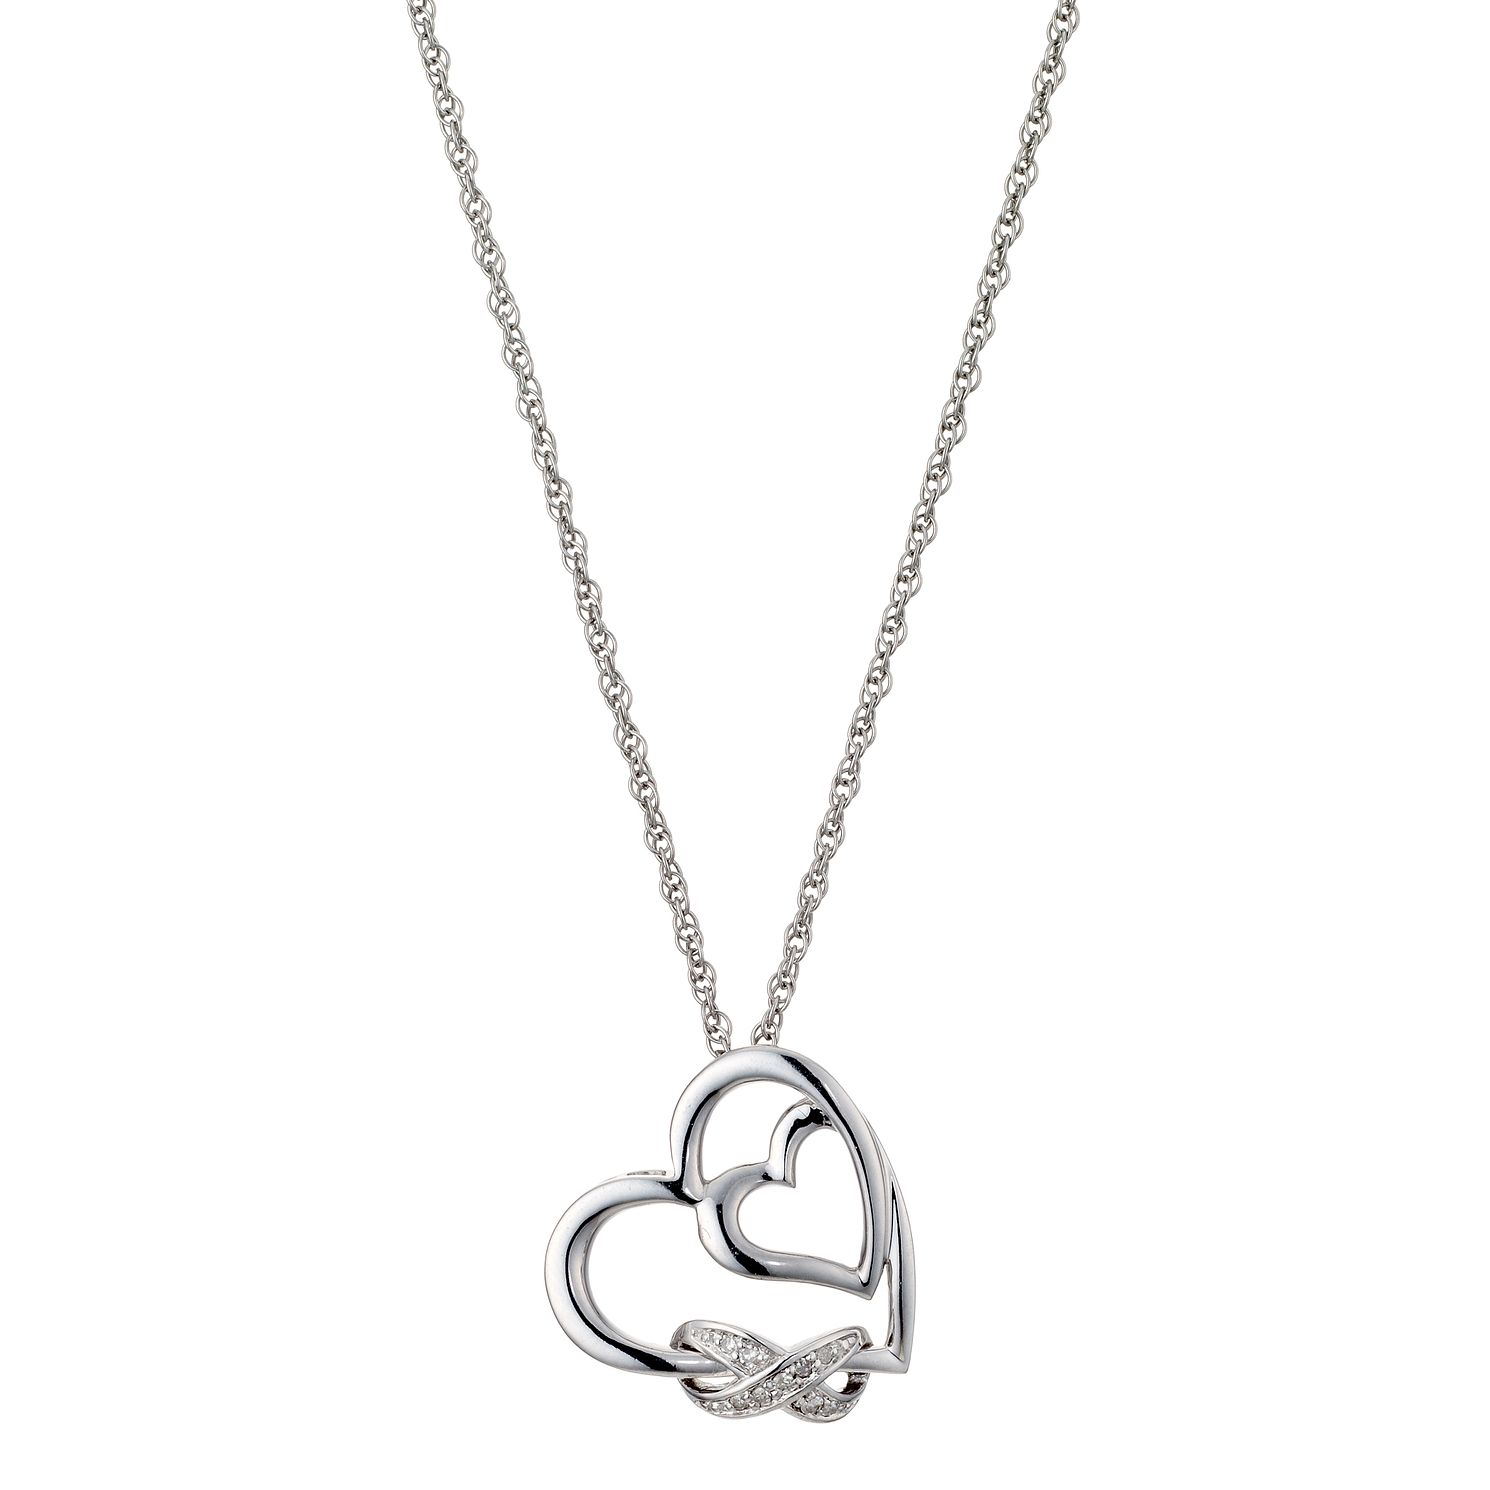 affinity pendant c cttw heart pink natural qvc diamond n chain jewelry with chocolate com necklace